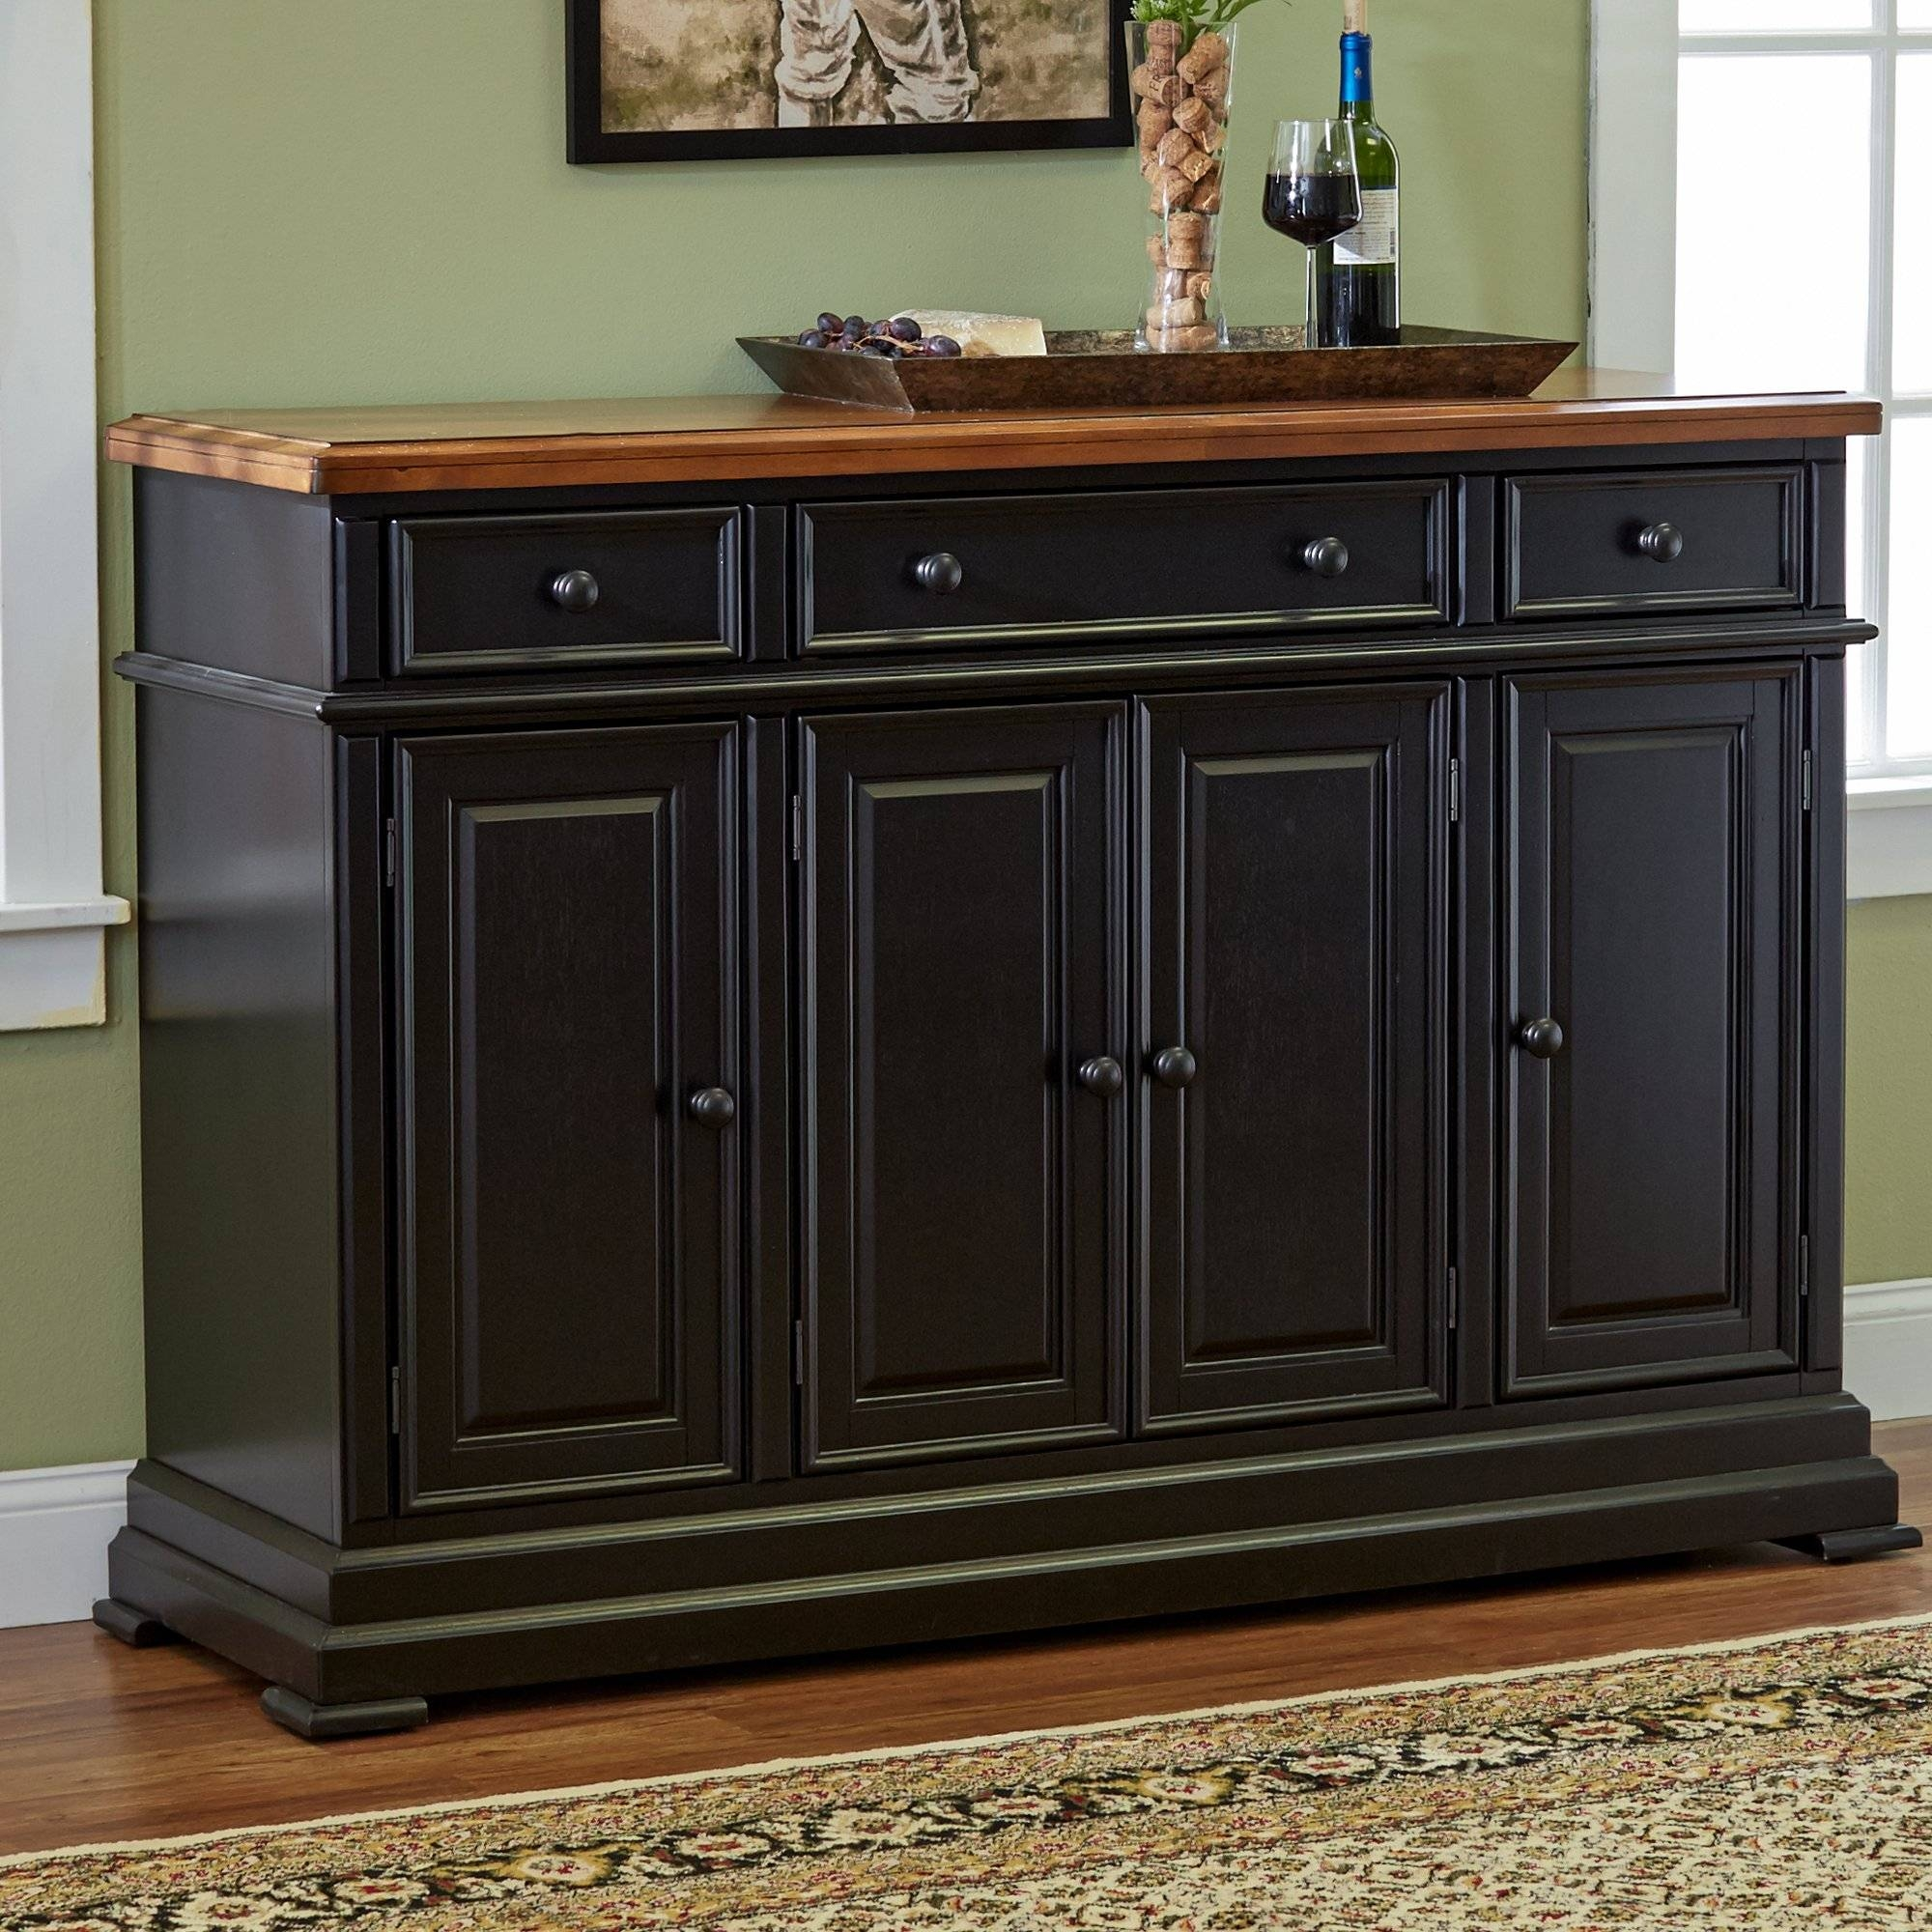 Furniture: Sideboard Buffet Table | China Buffet Furniture inside Distressed Wood Sideboards (Image 14 of 30)